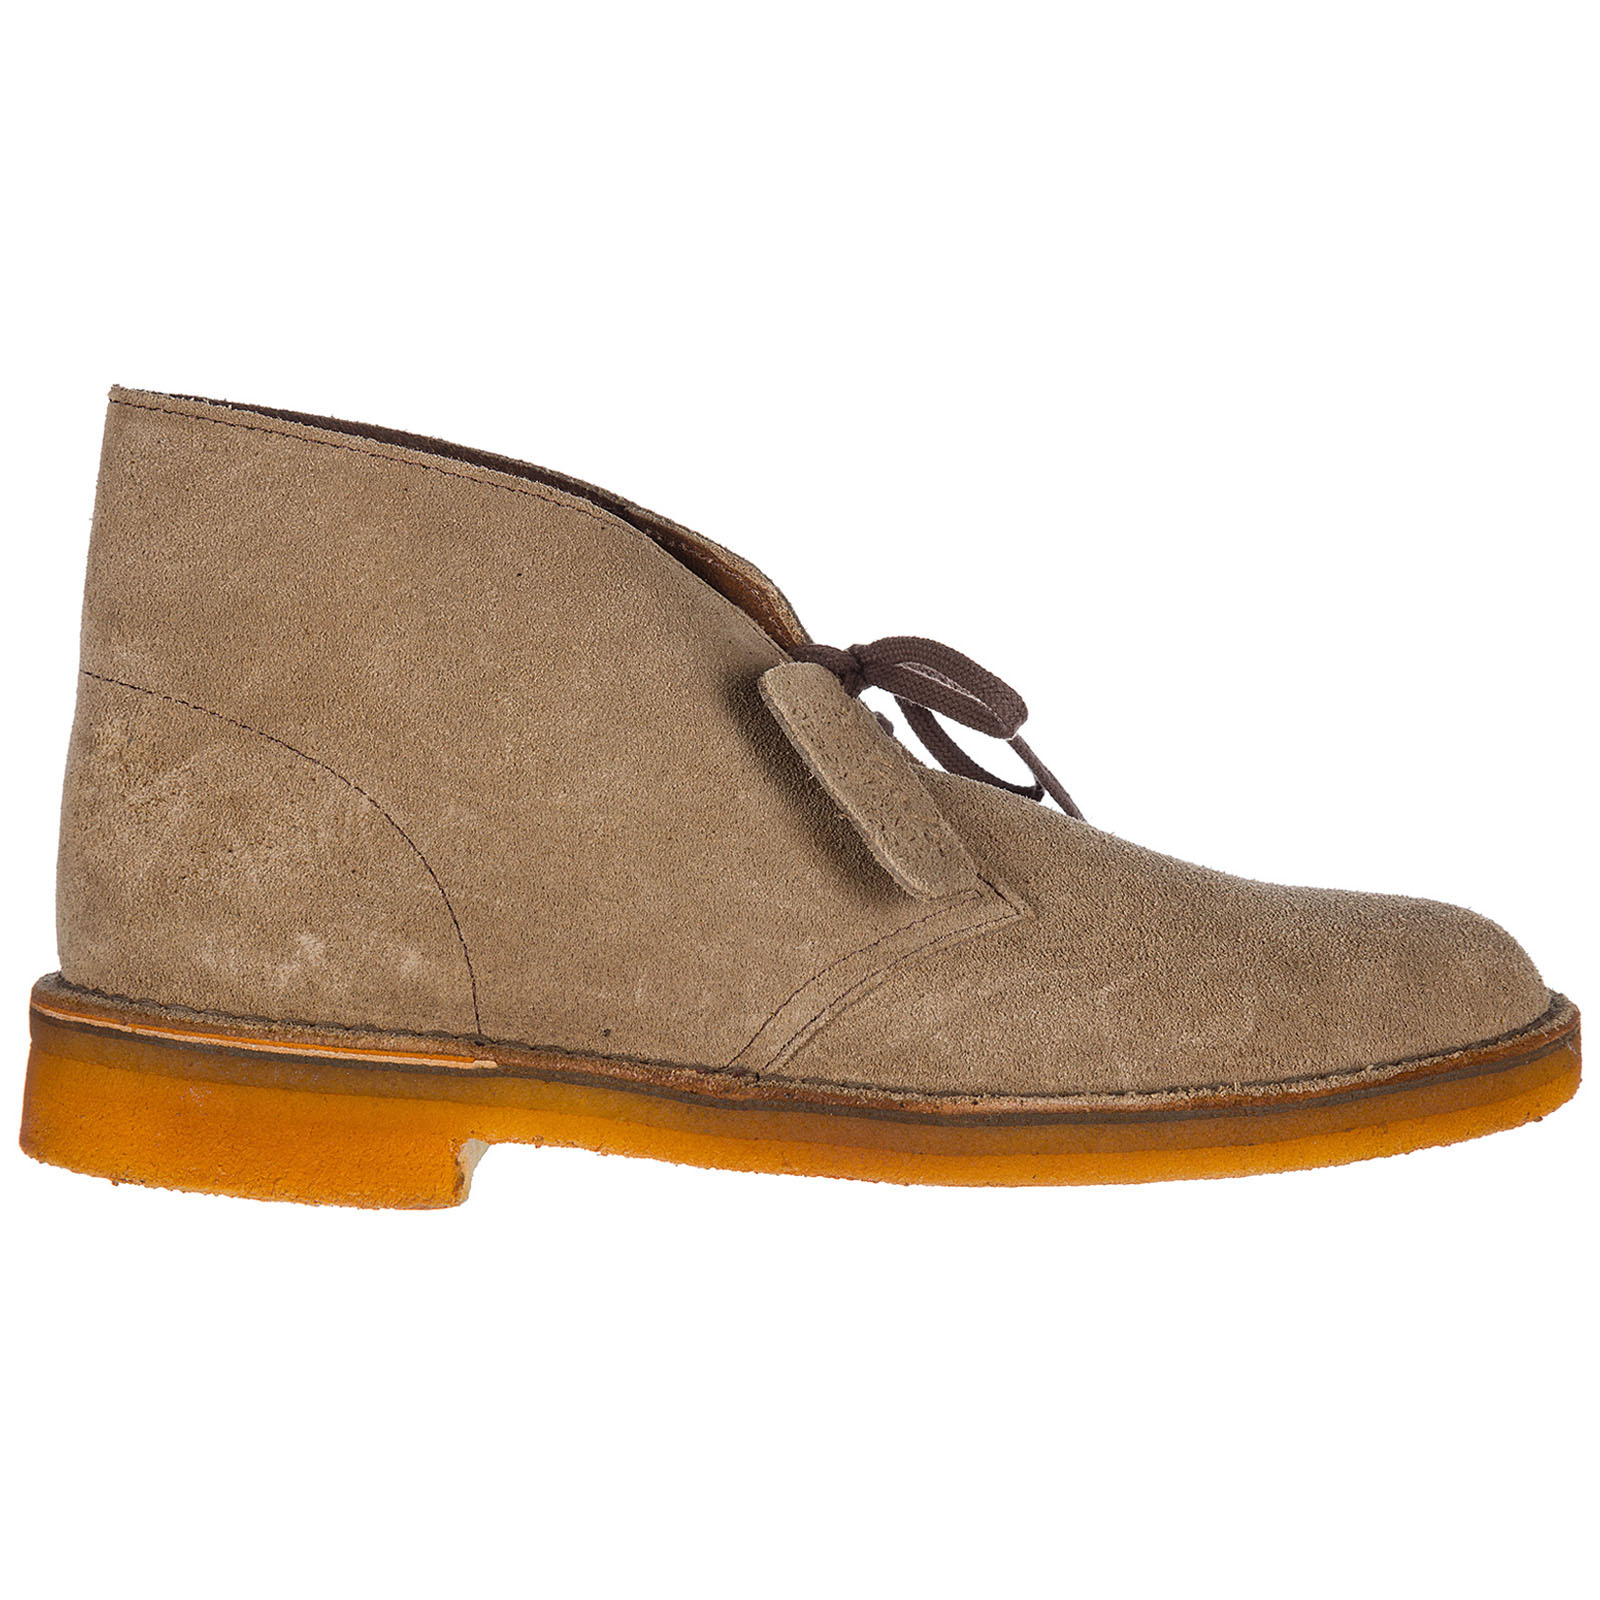 Men's suede desert boots lace up ankle boots